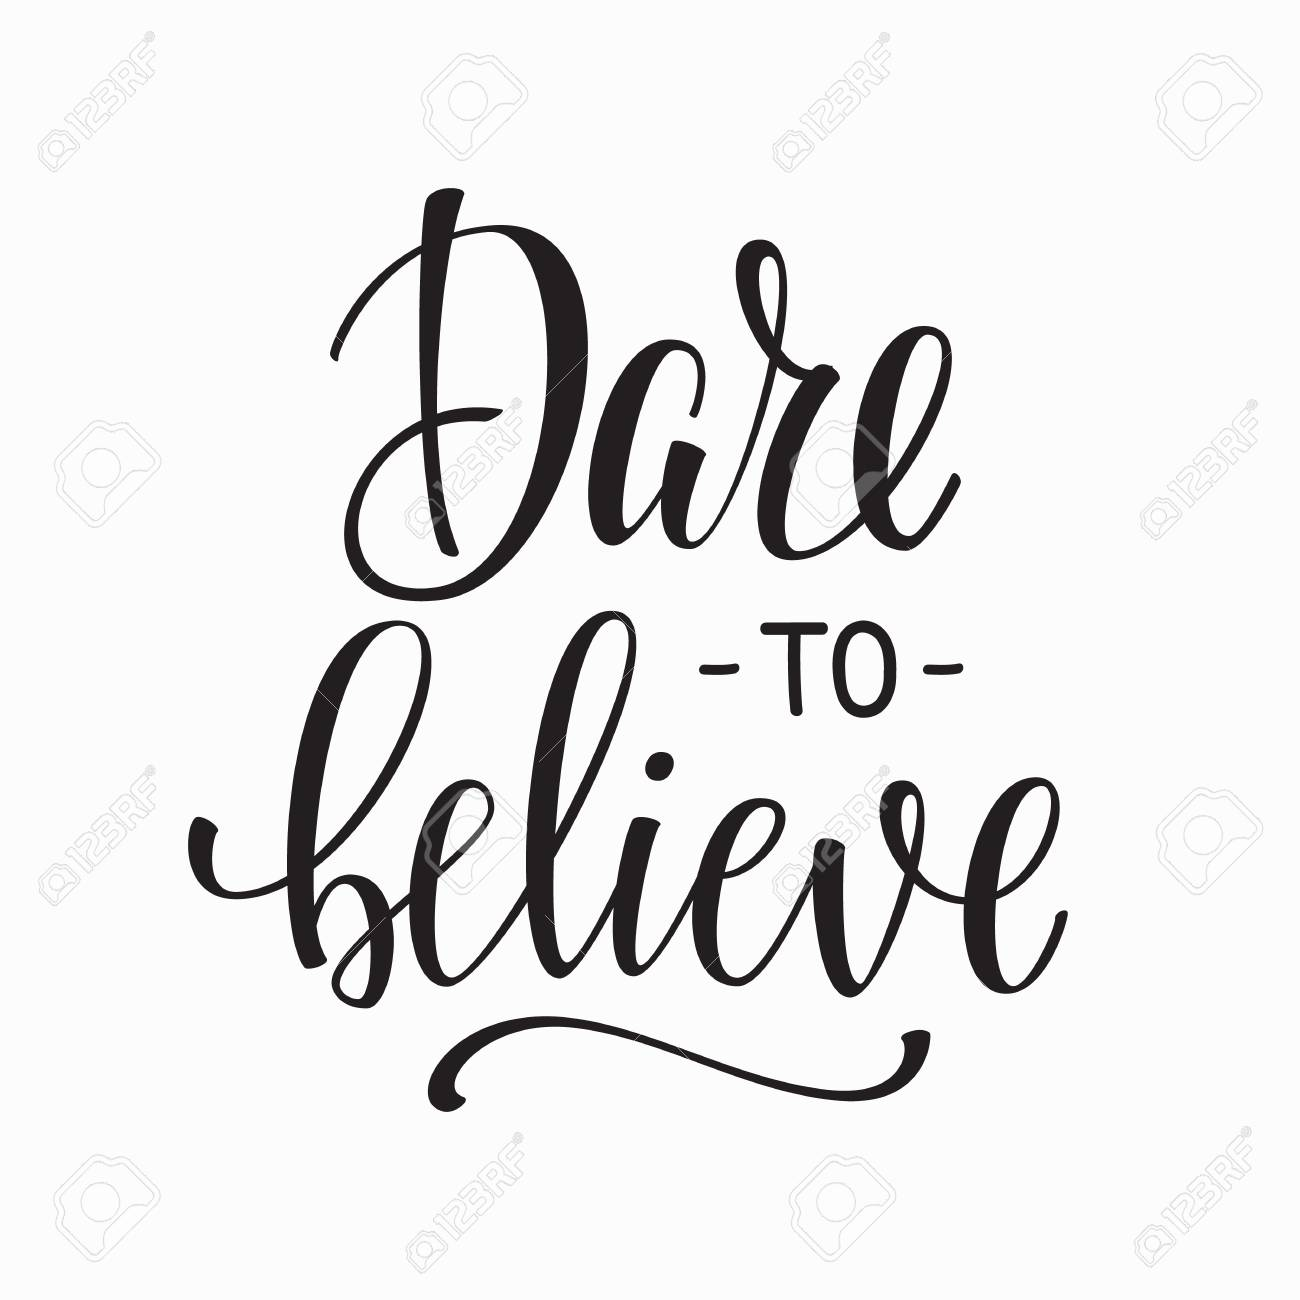 Dare To Believe Quote Lettering Calligraphy Inspiration Graphic Design Typography Element Hand Written Postcard